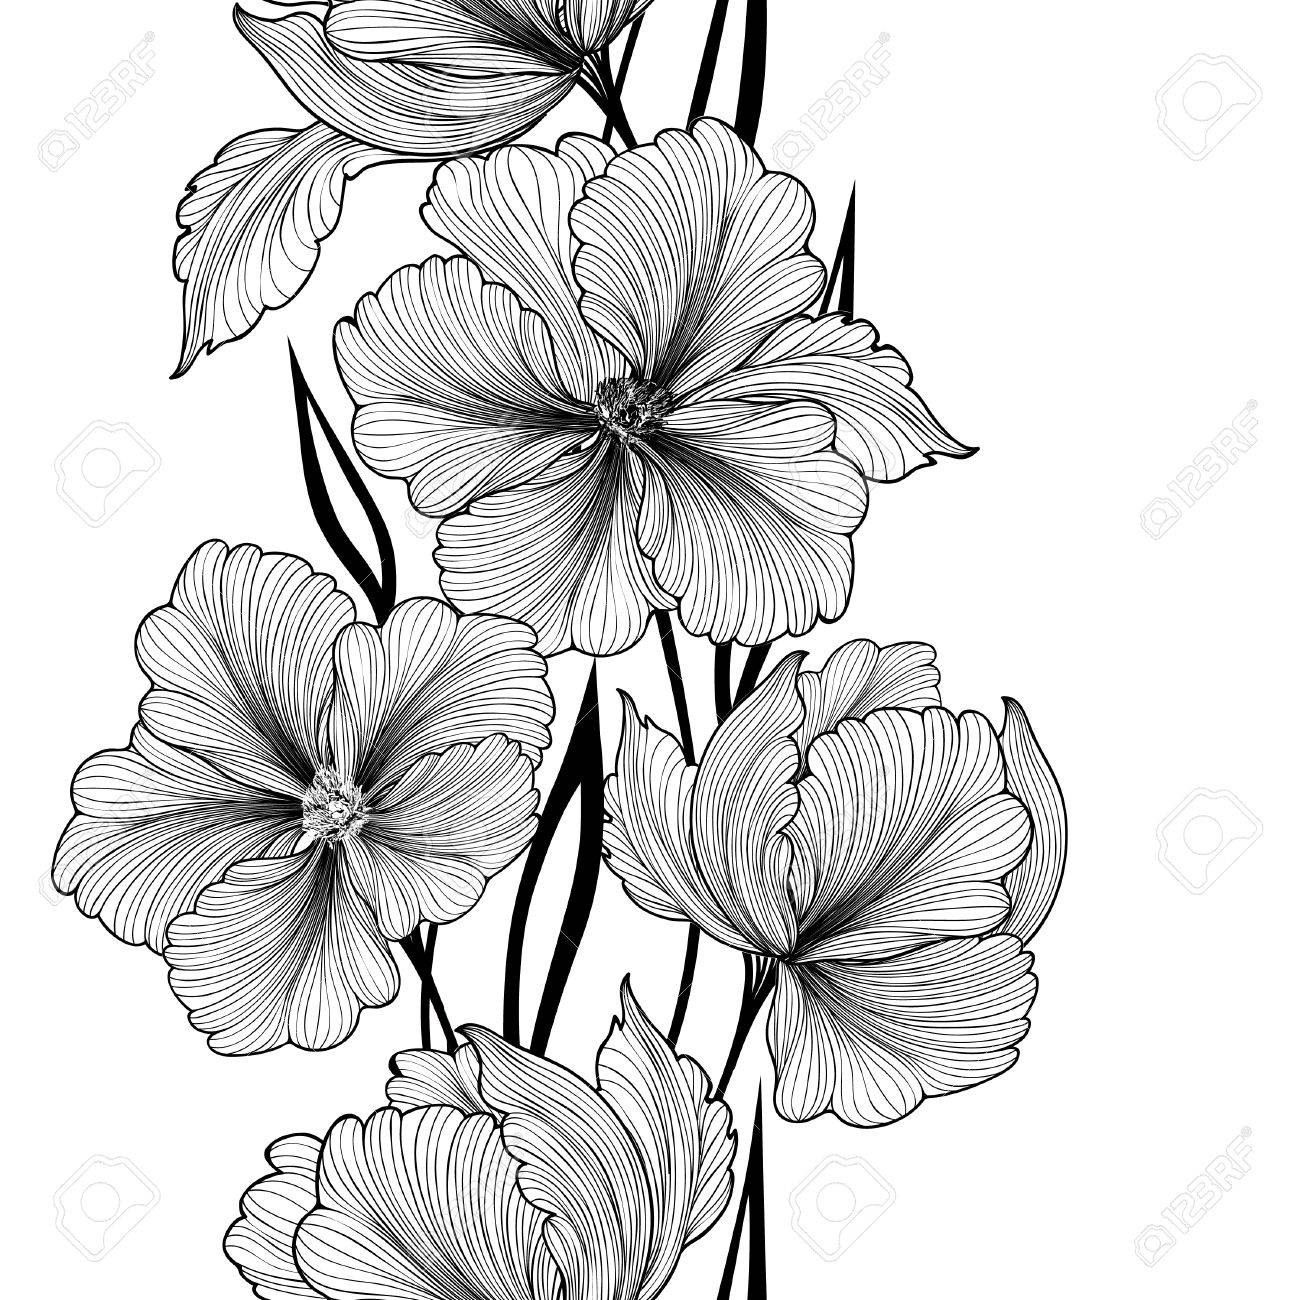 Beautiful Monochrome Black And White Dahlia Flower Isolated On.. Royalty  Free Cliparts, Vectors, And Stock Illustration. Image 64736730.